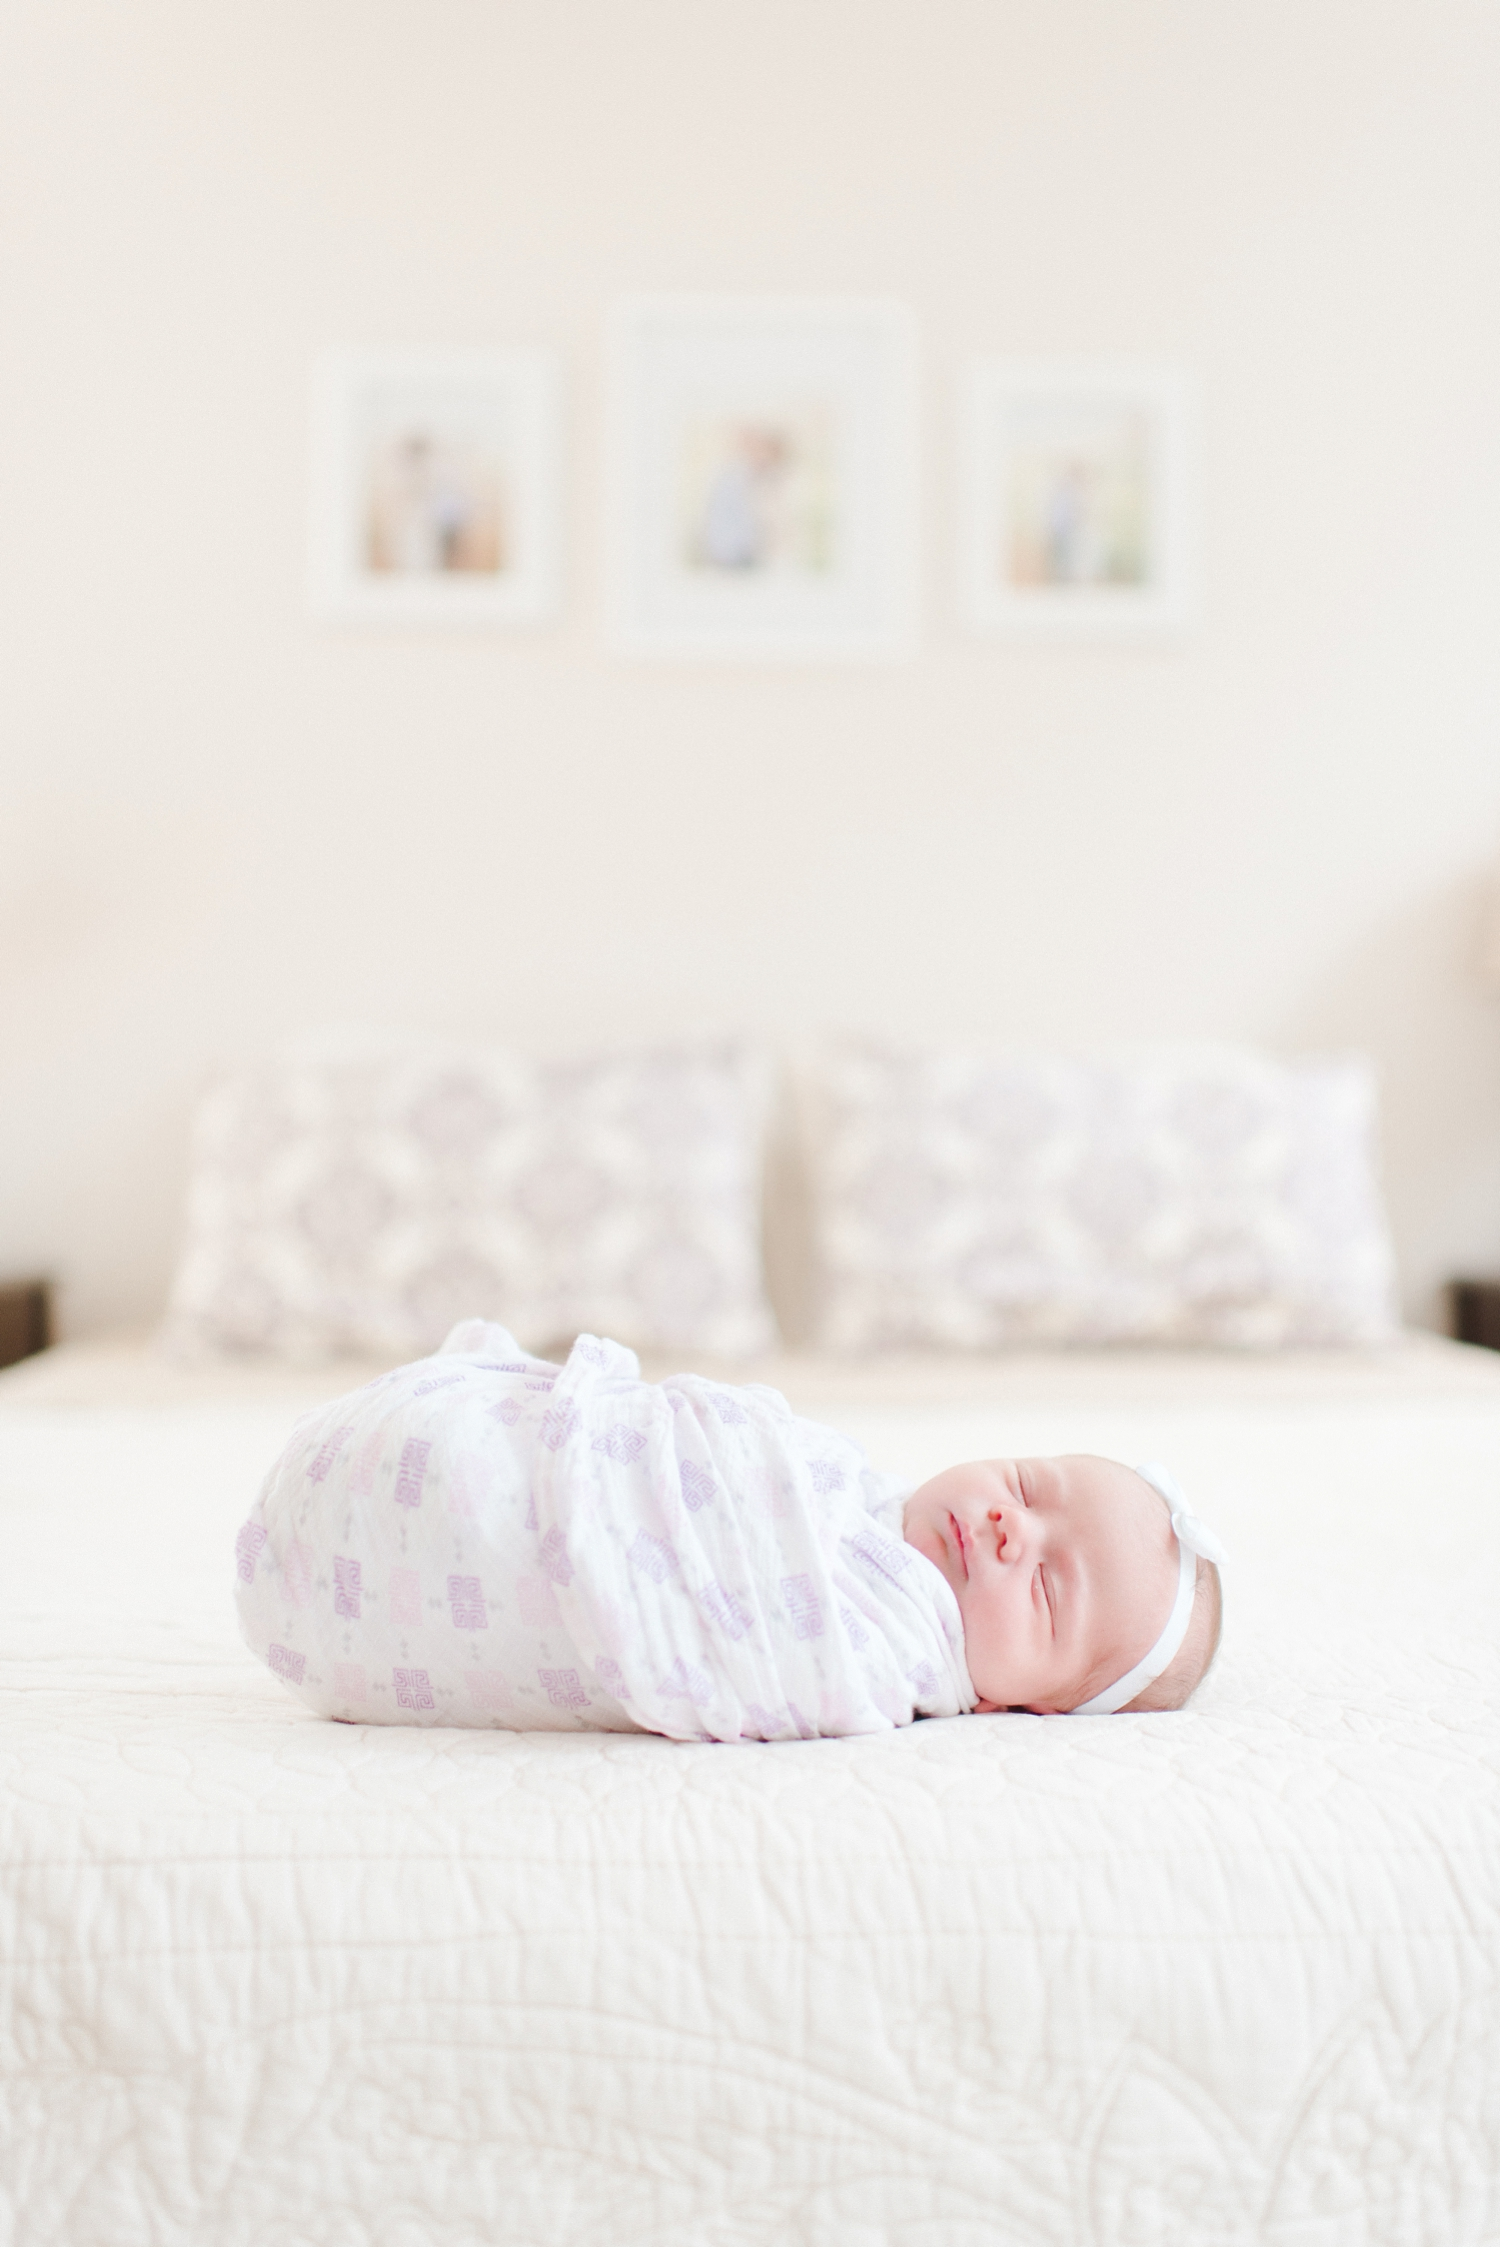 richmond_family_newborn photographer_0035.jpg